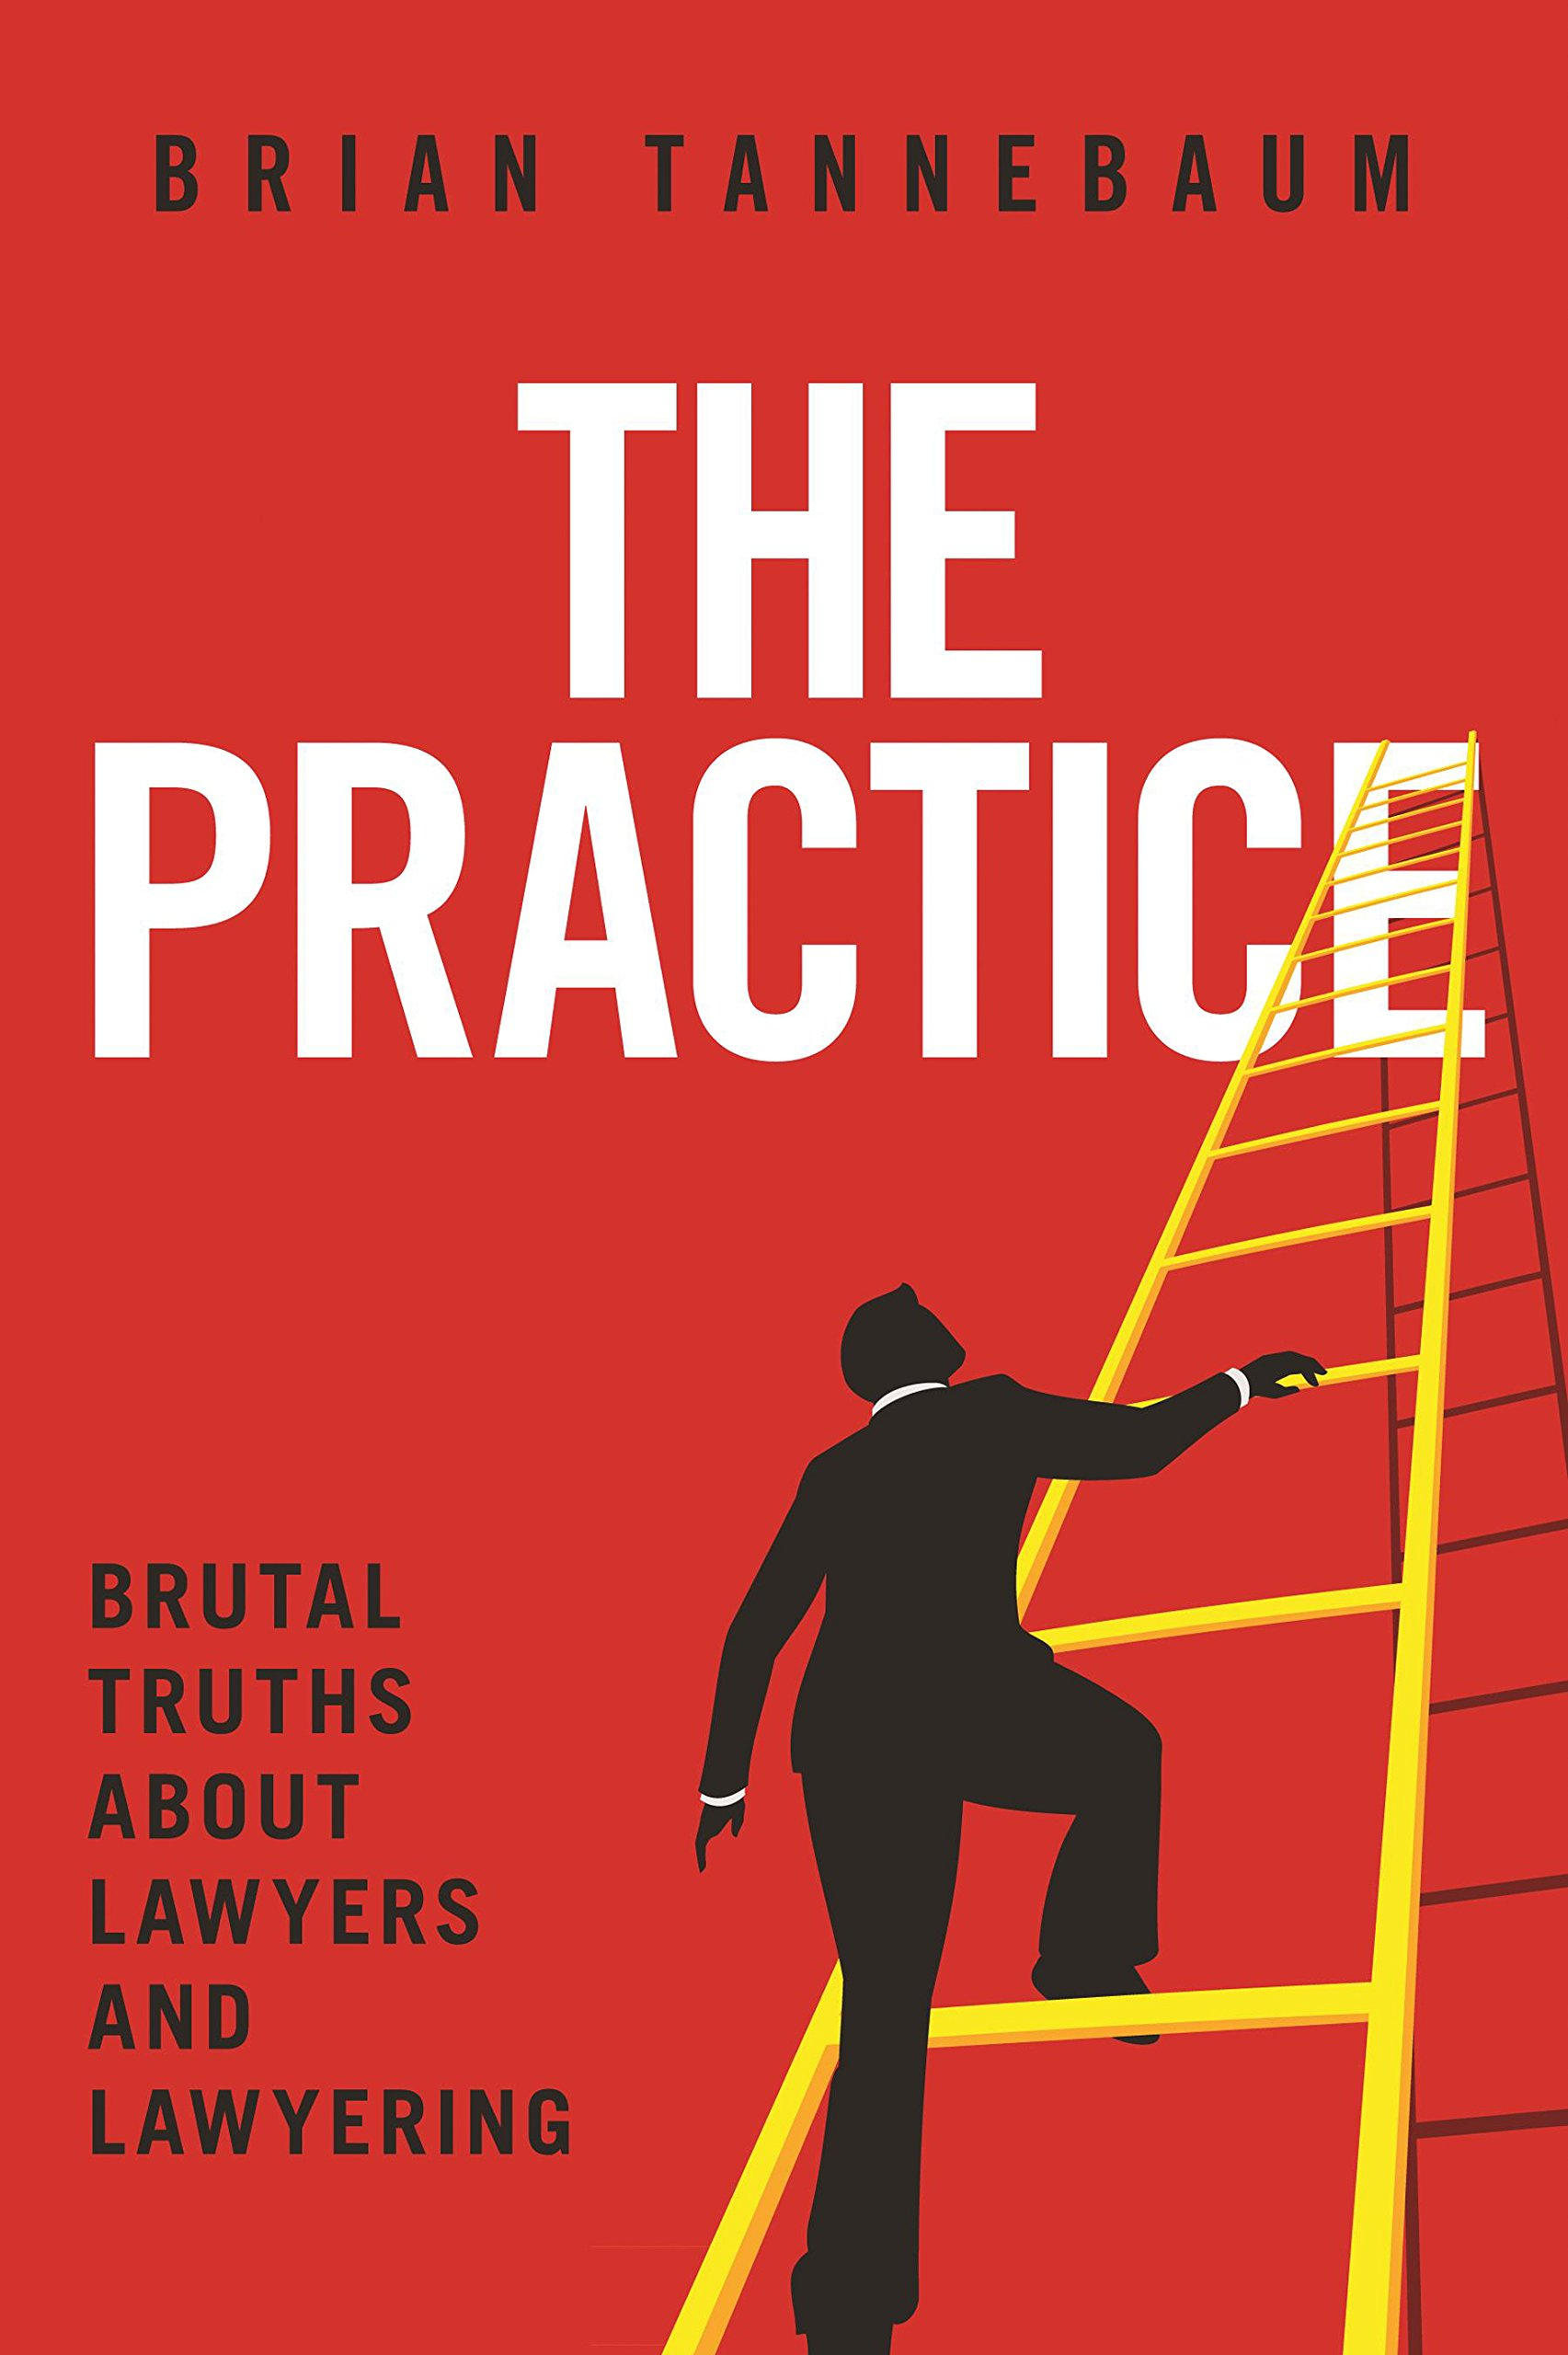 Book Review: The Practice